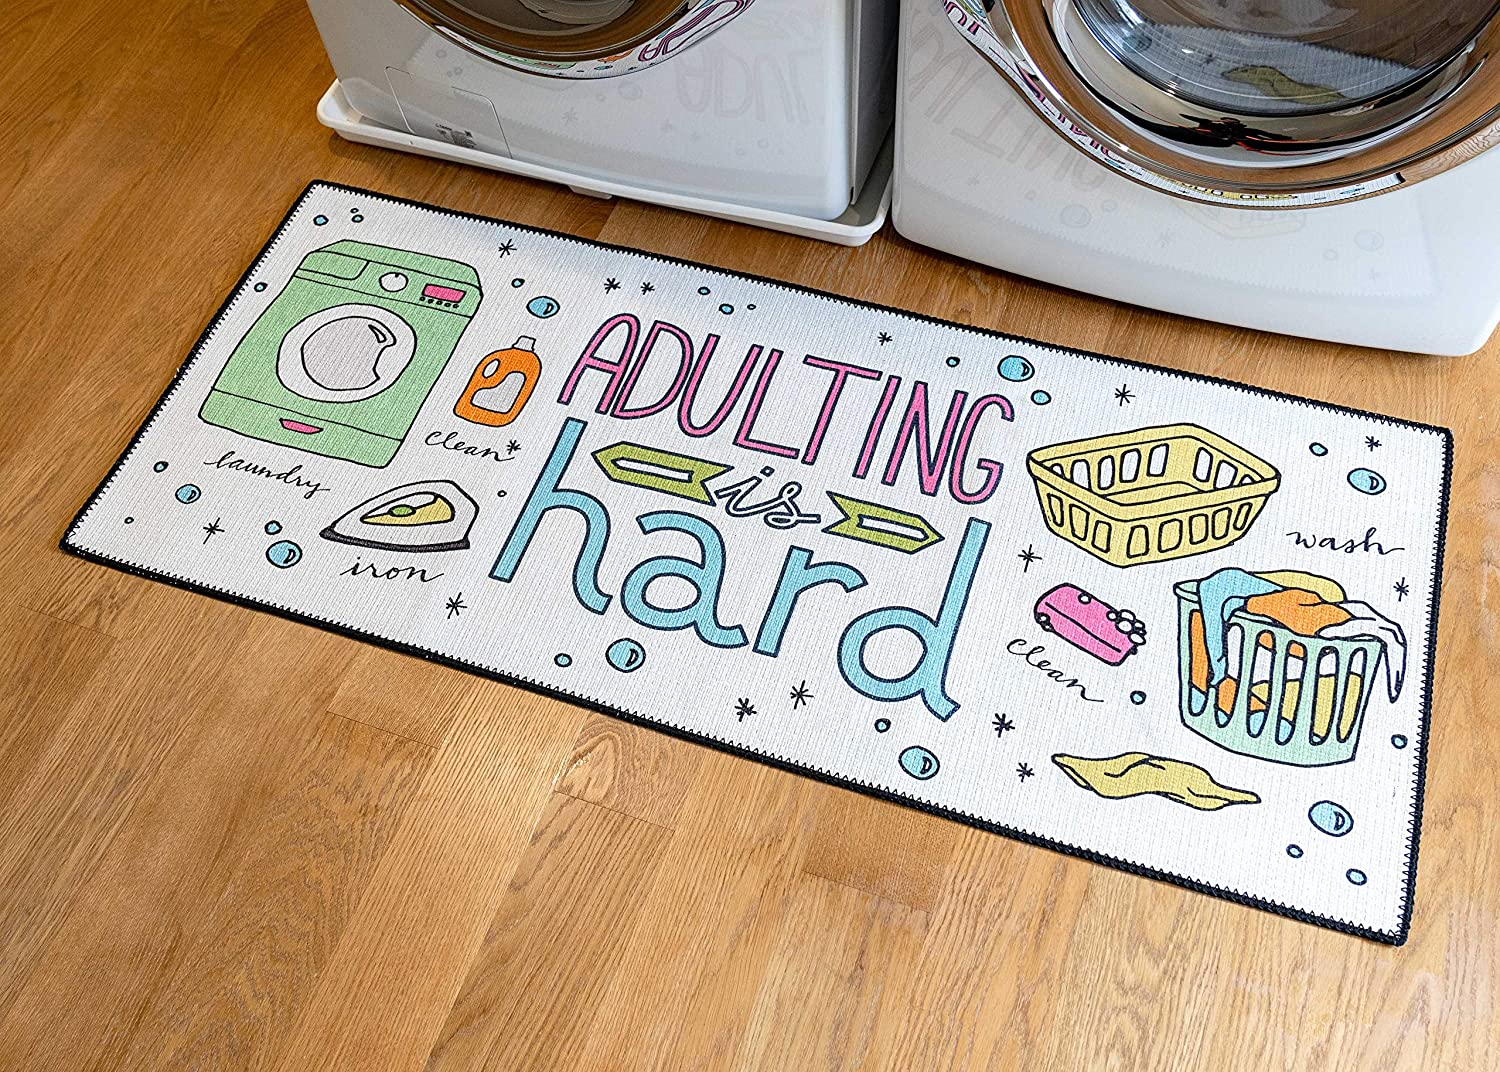 Runner Floor Mat for Washroom Non Skid Rubber Area Rugs Durable Benissimo Laundry Room Rug Mudroom Cotton Kitchen Decor Bathroom 24x56-ADUL Machine Washable